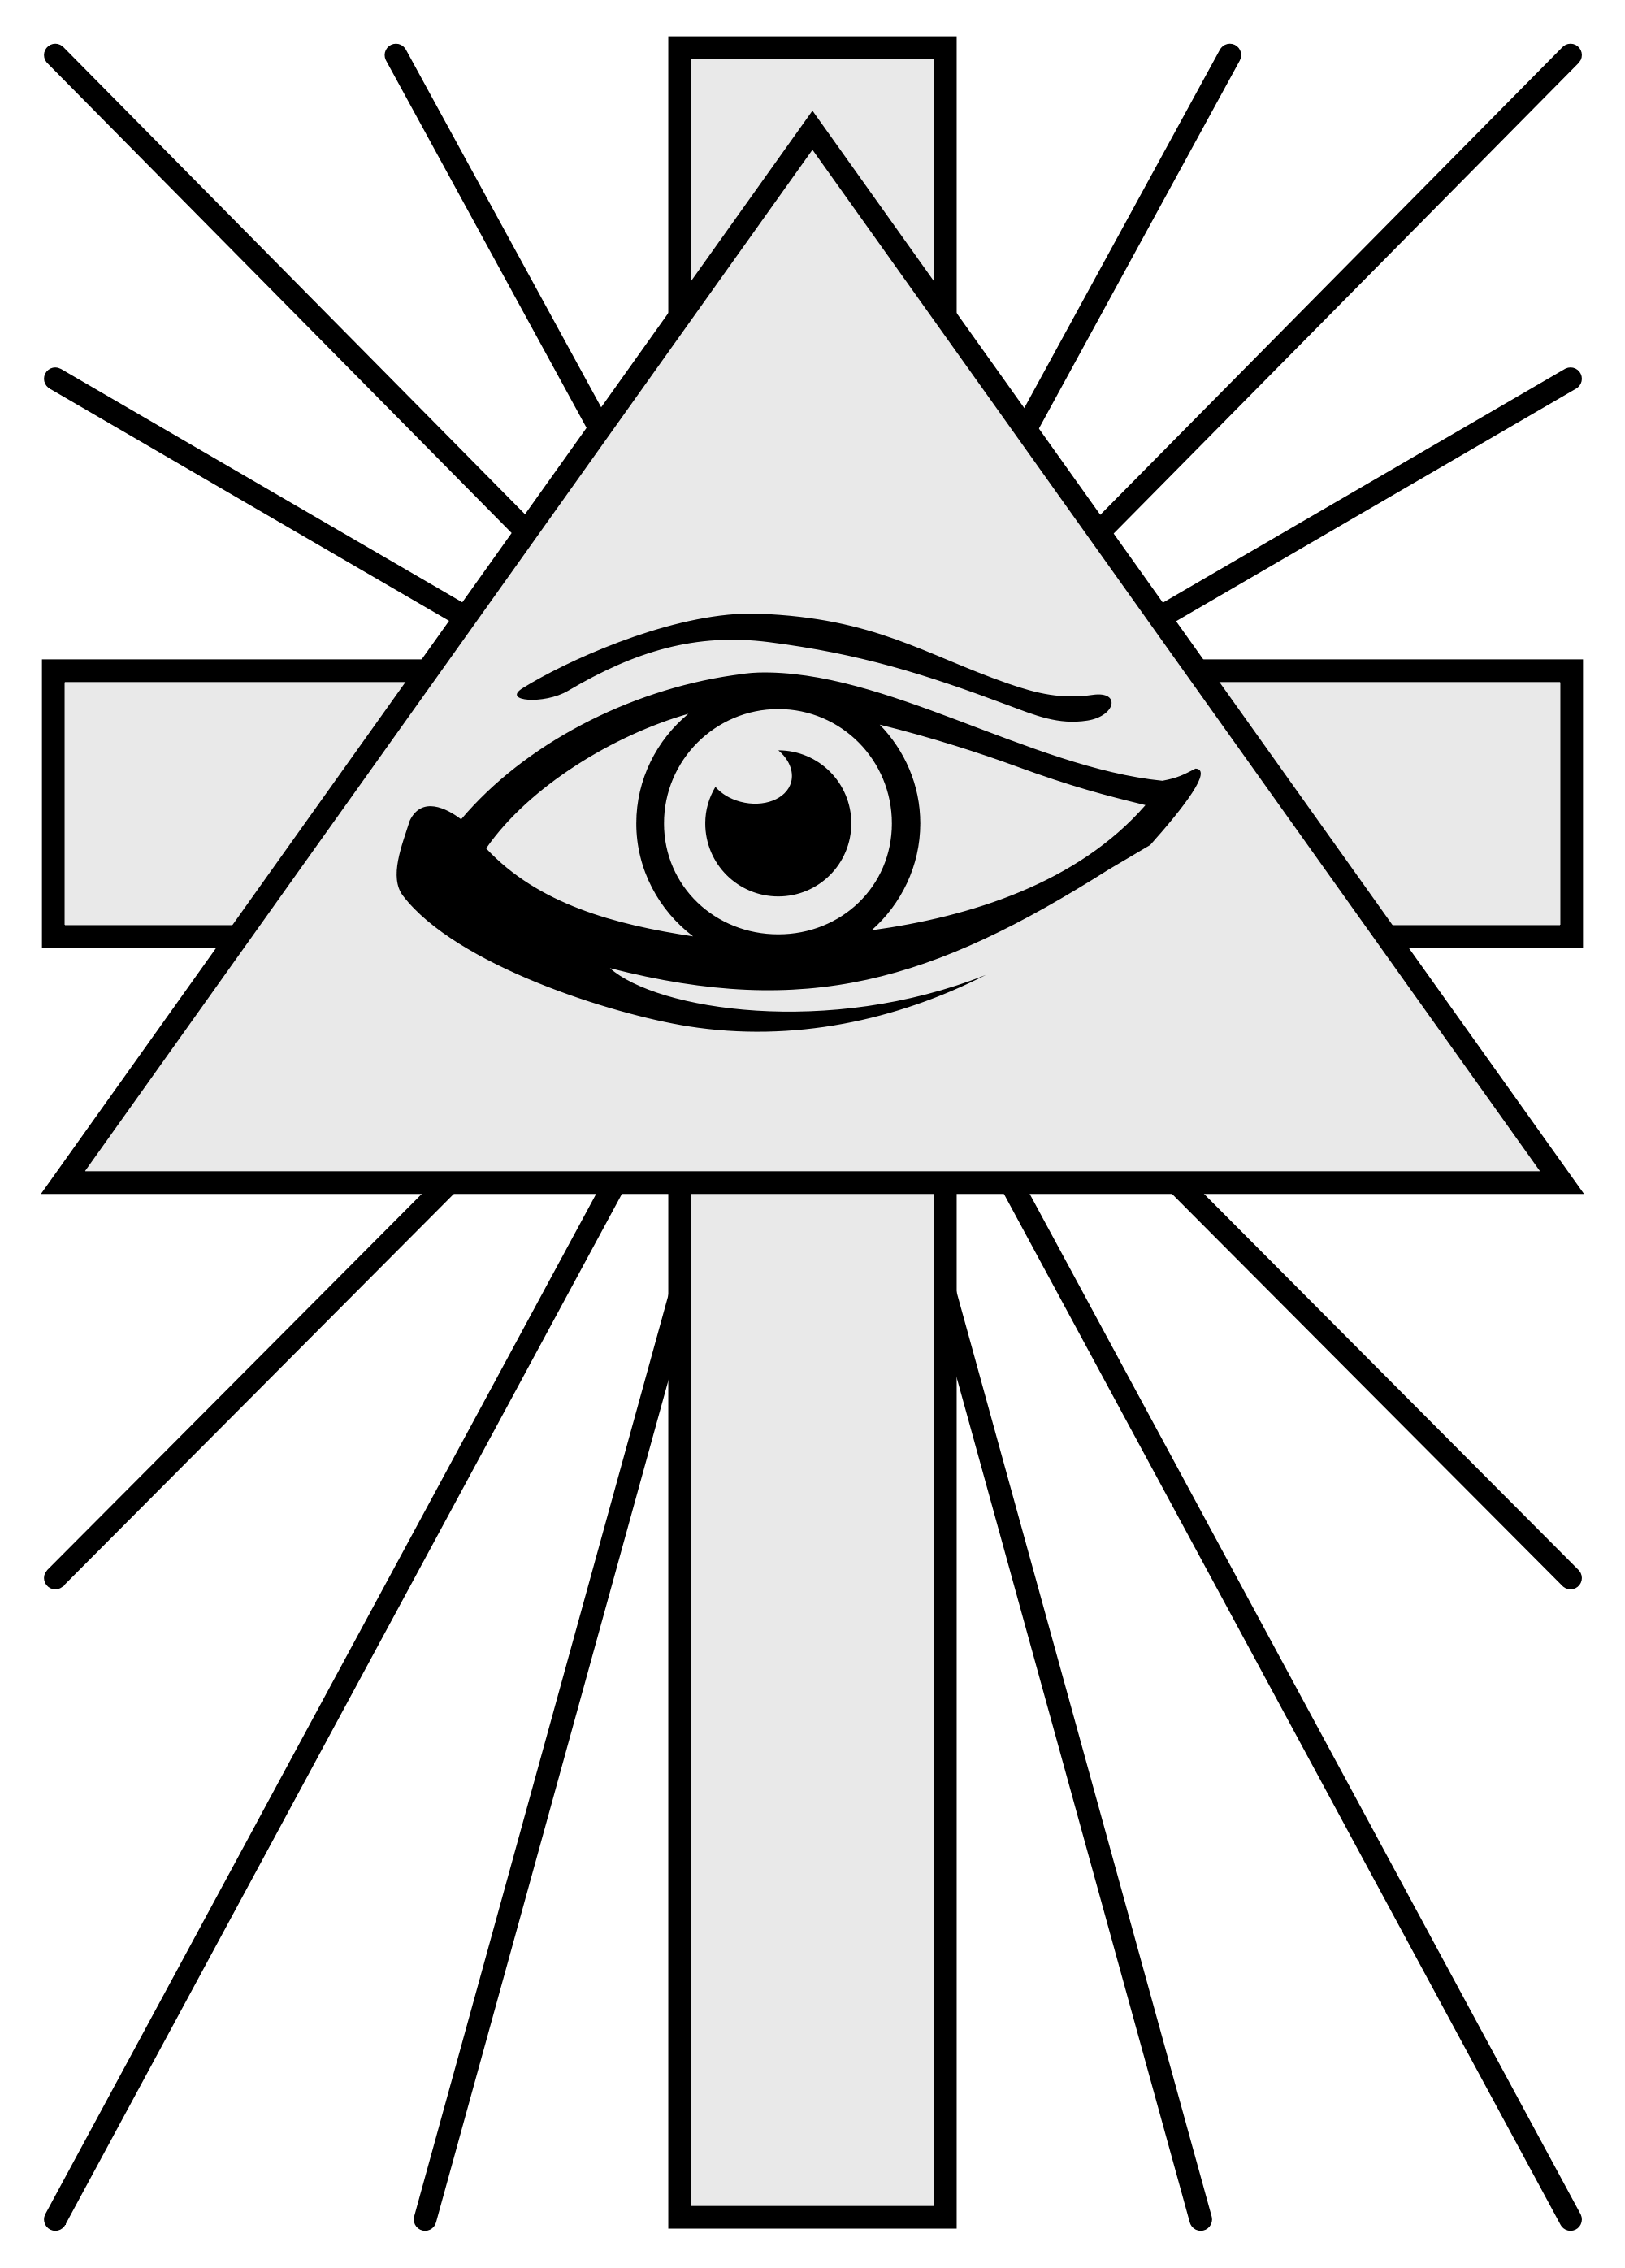 all seeing eye pyramid png